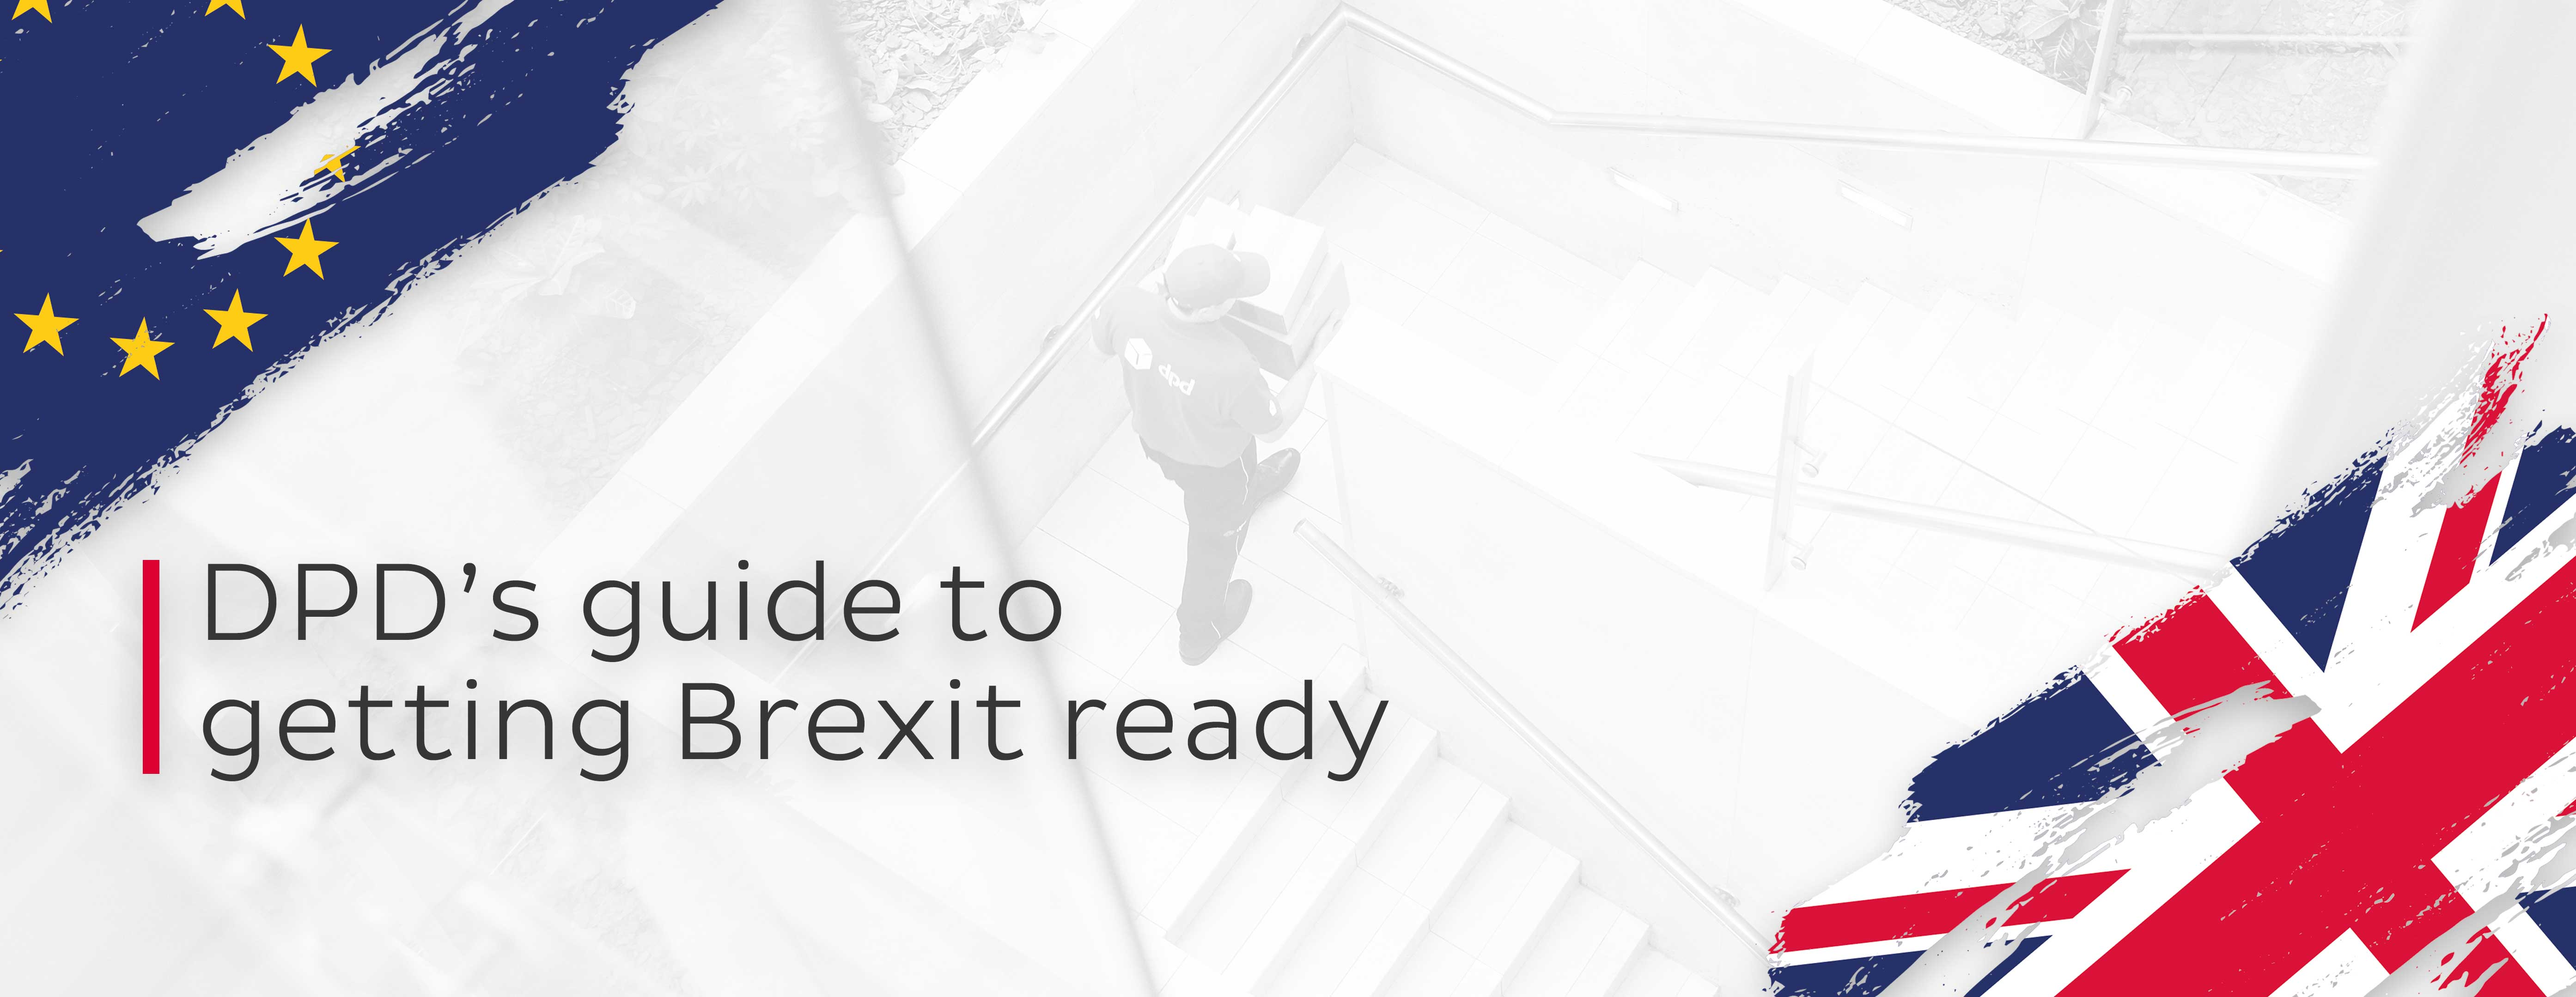 DPD's guide to getting Brexit ready